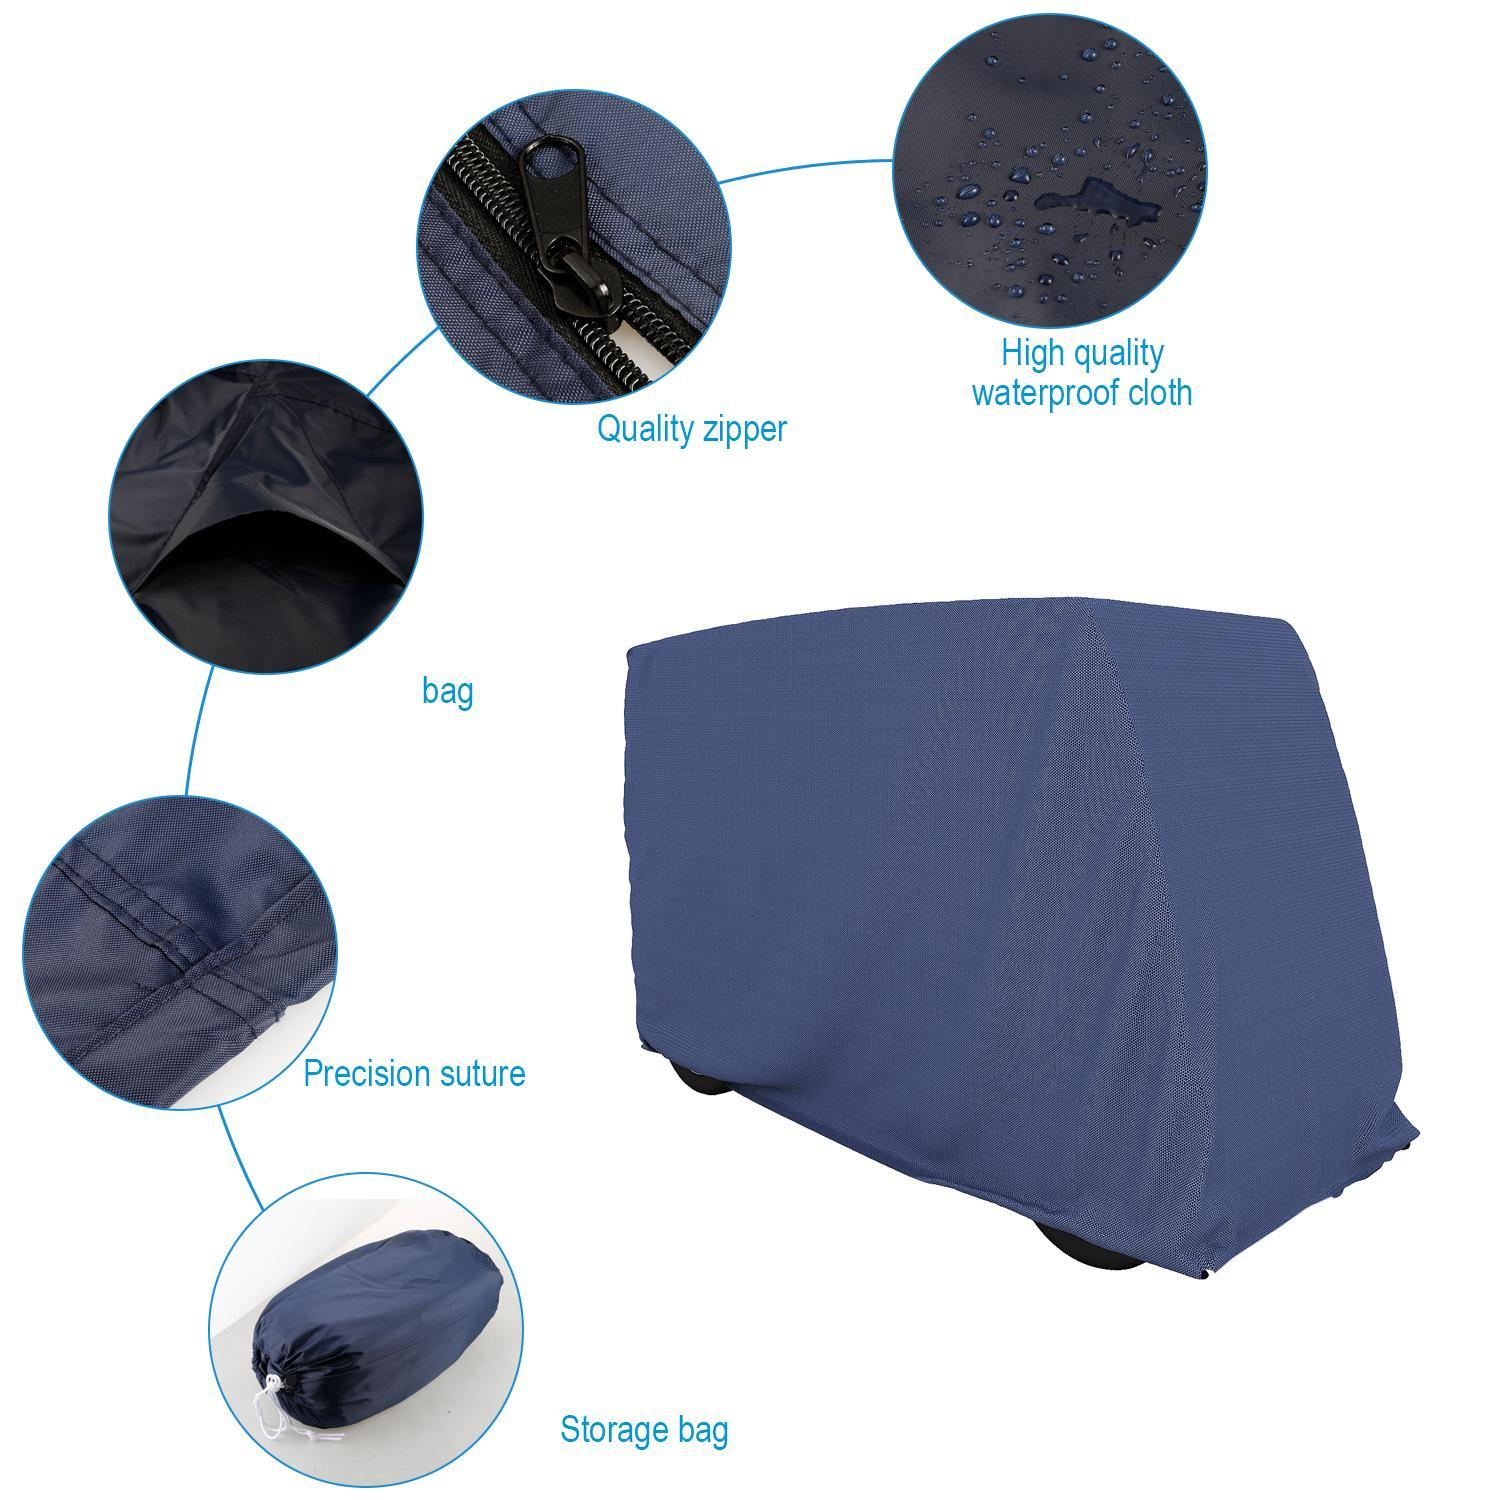 Elecmall Waterproof Golf Cart Cover Covers Club Car, EZGO...